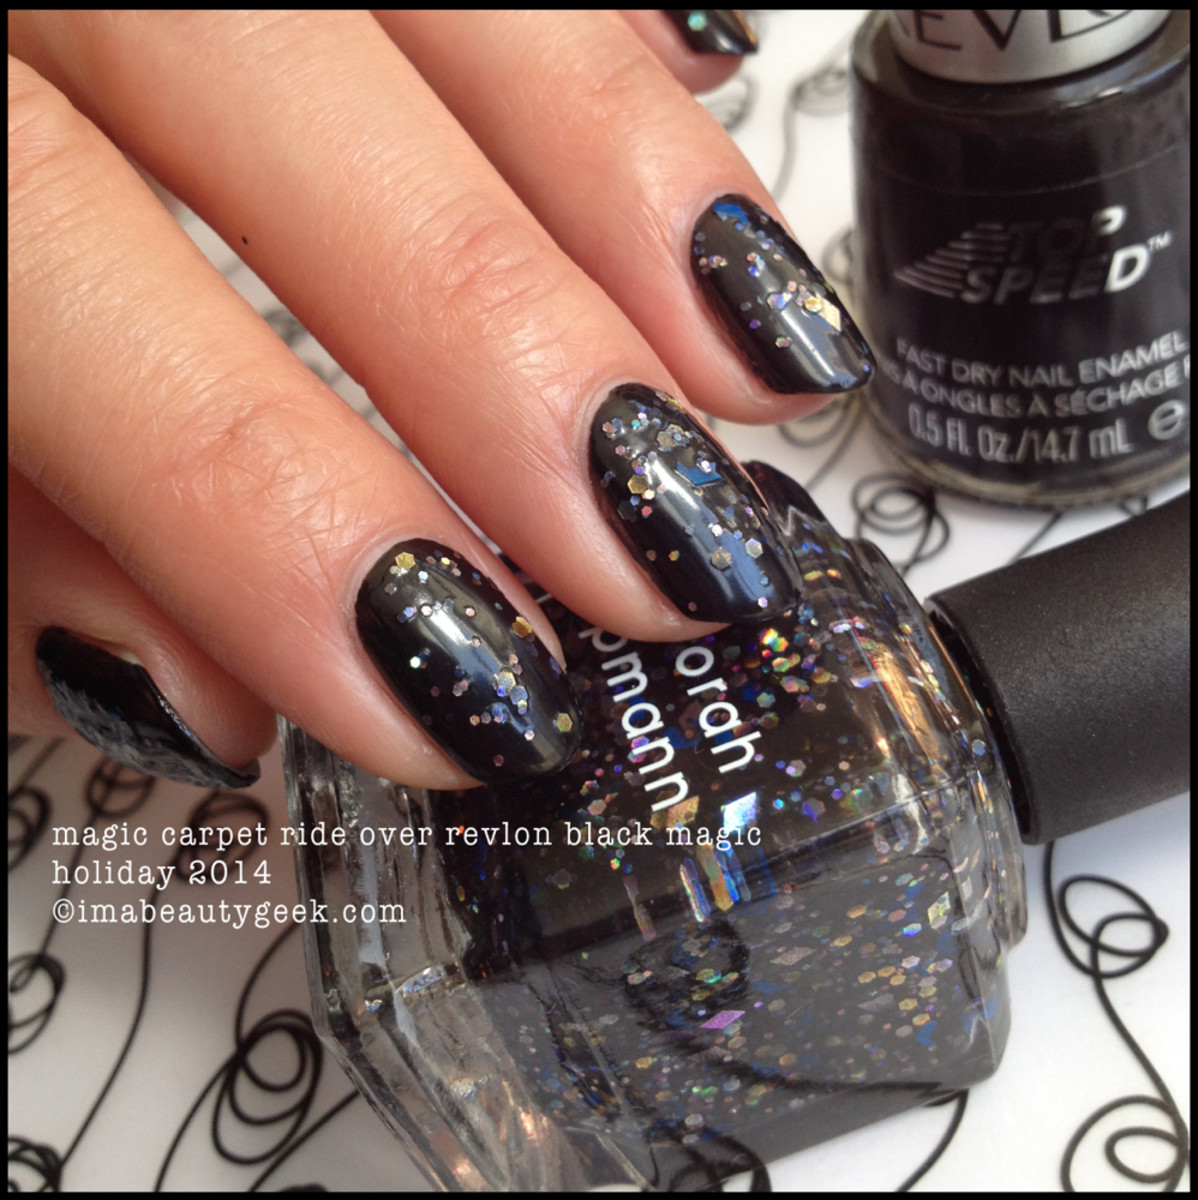 Deborah Lippmann Fantastical Magic Carpet Ride over Black no TC Holiday 2014